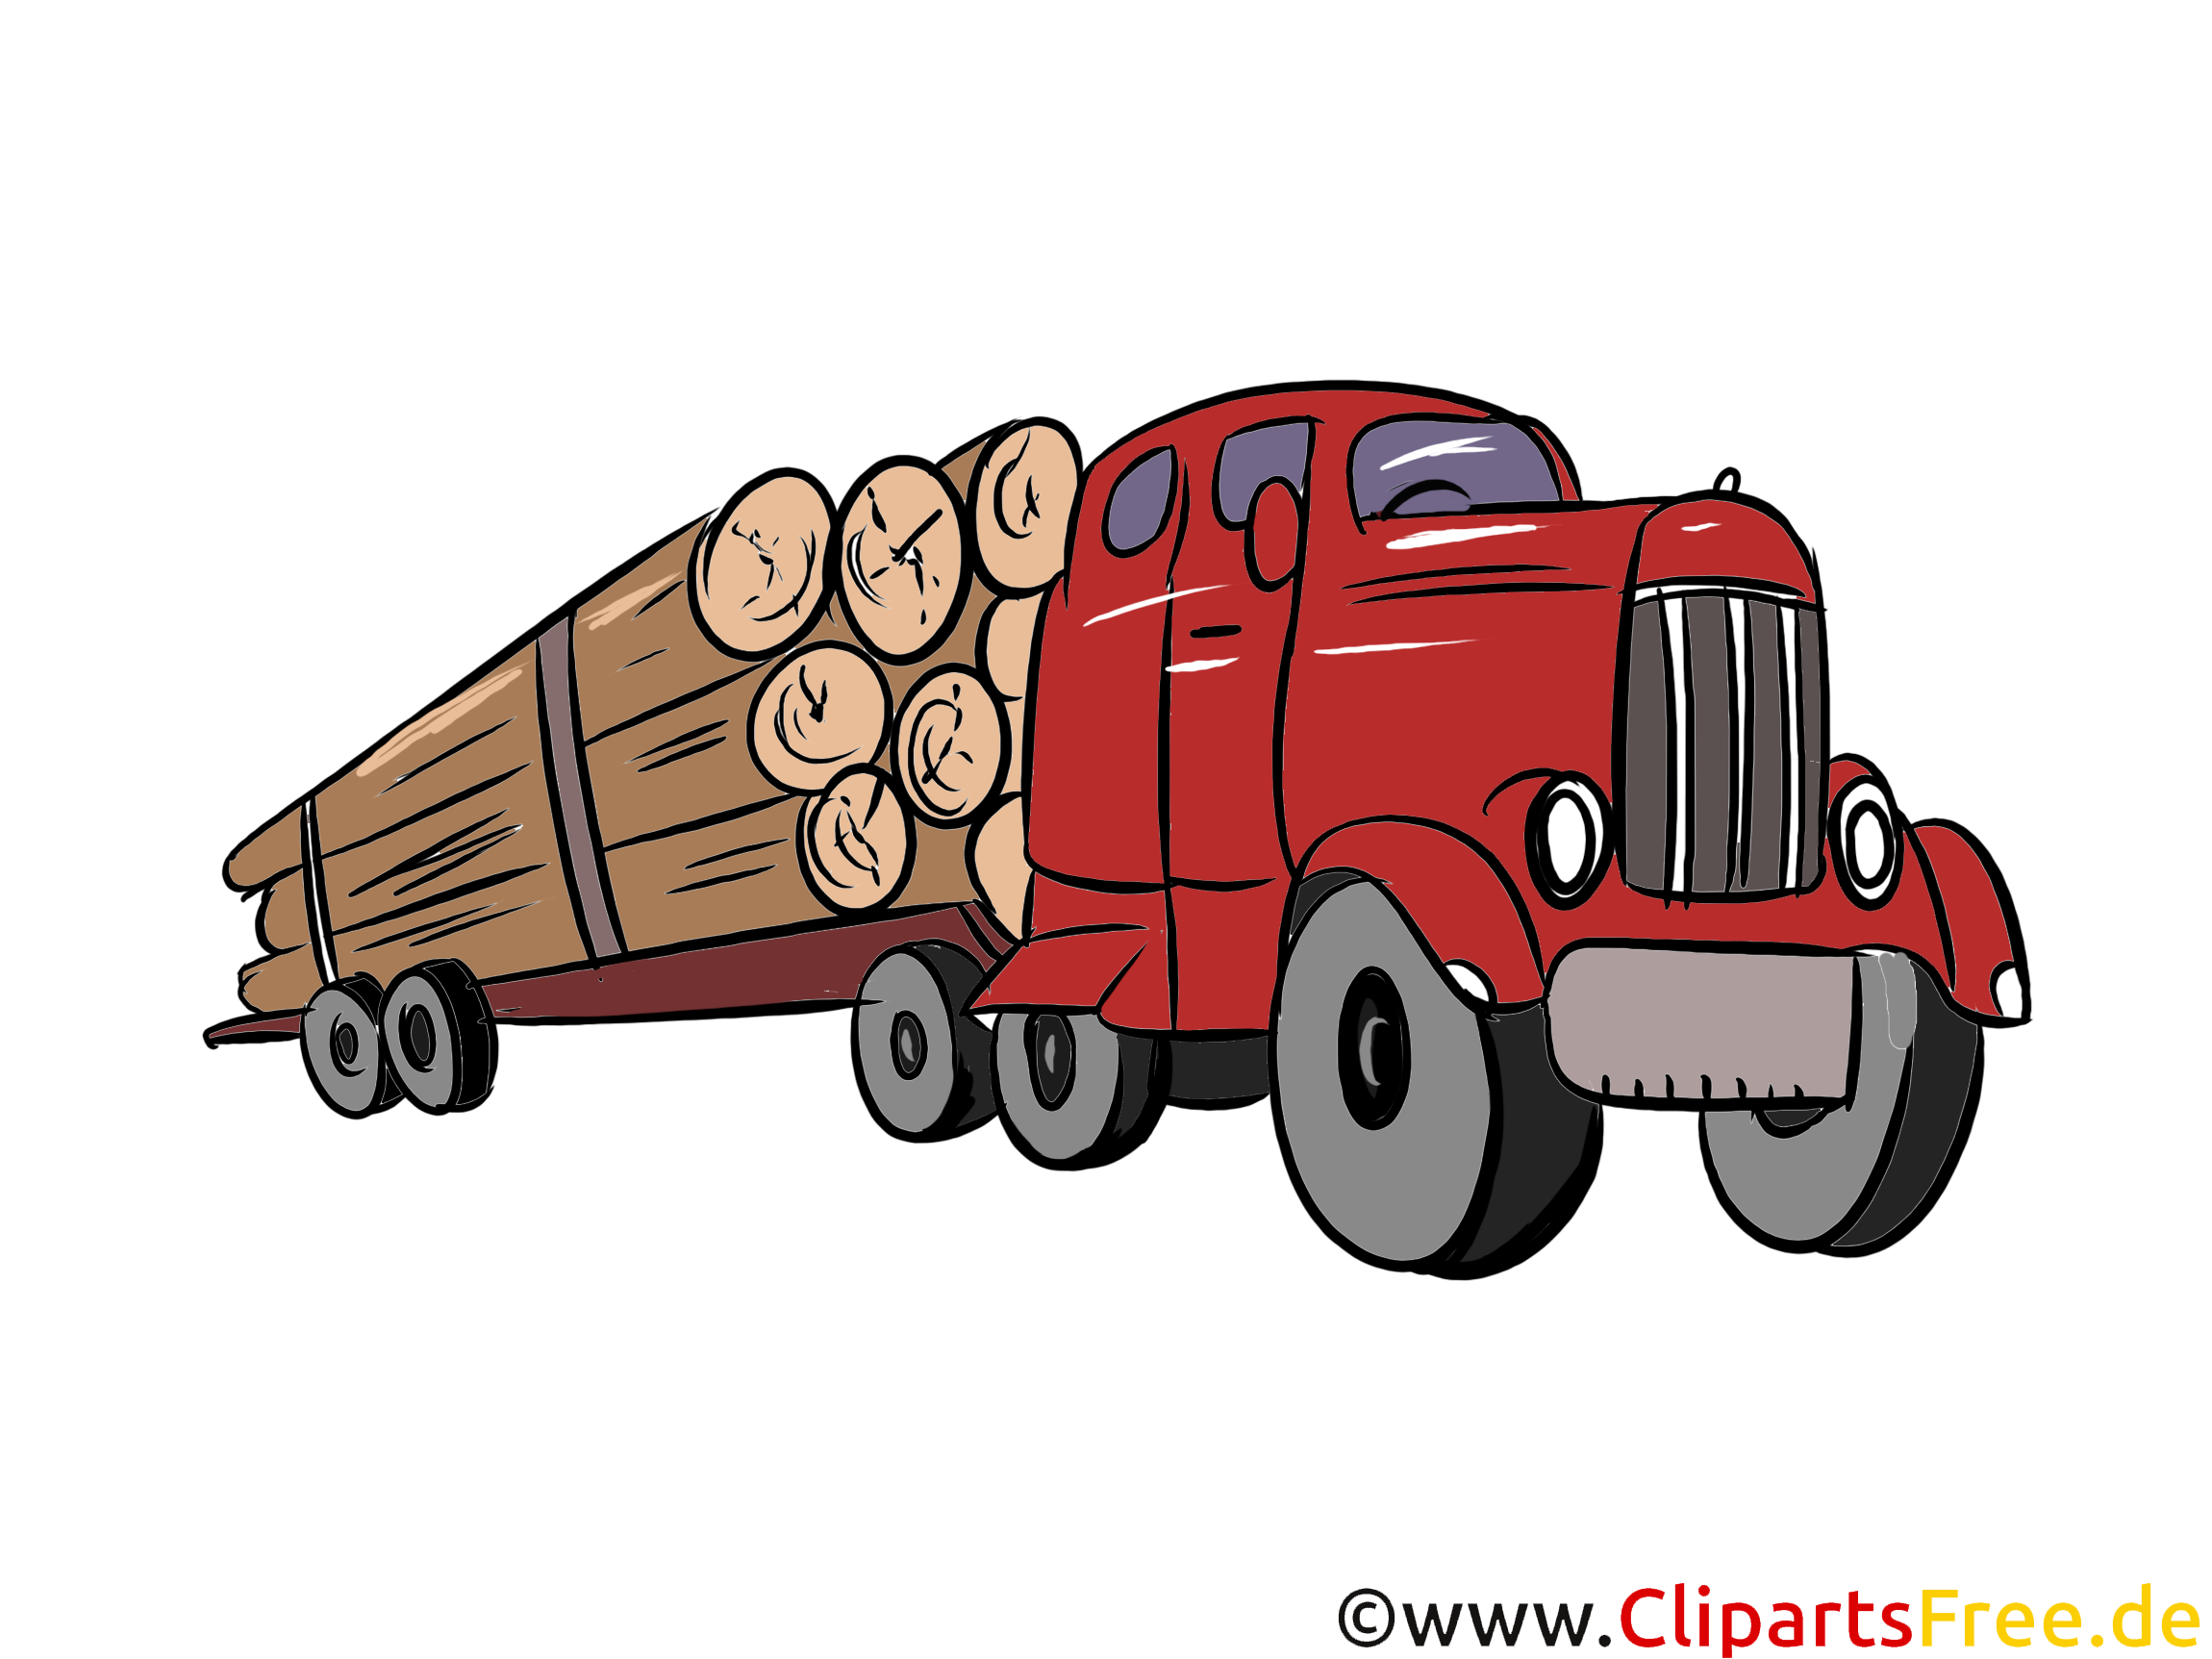 Holz-Sattelzug Illustration, Bild, Clipart Autos